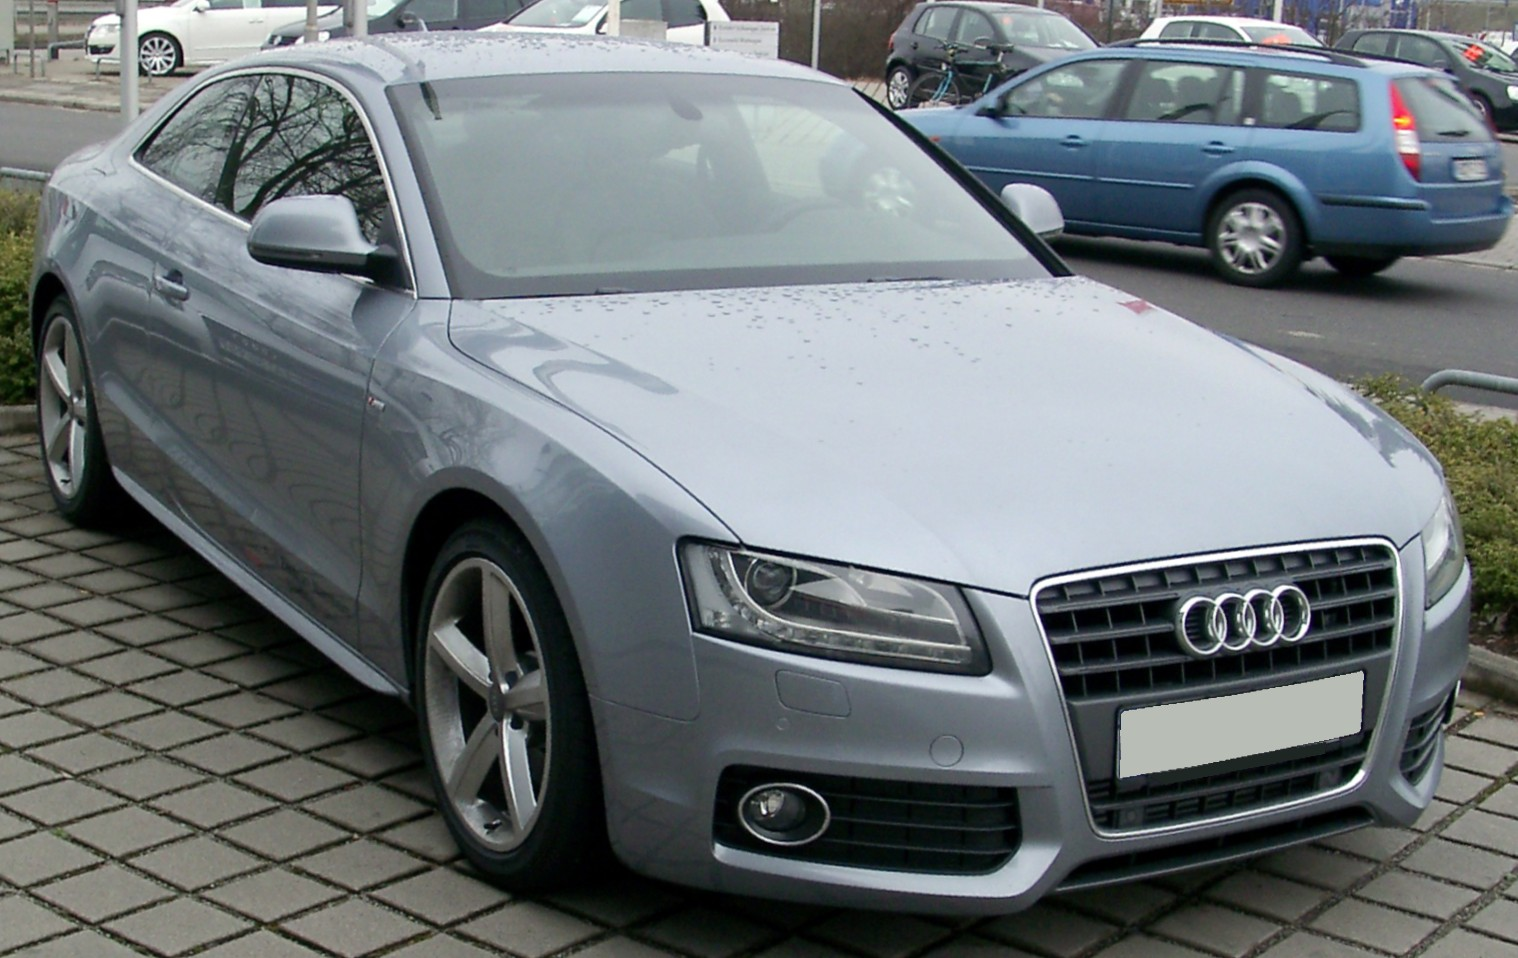 File:Audi A5 front 20080225.jpg - Wikimedia Commons